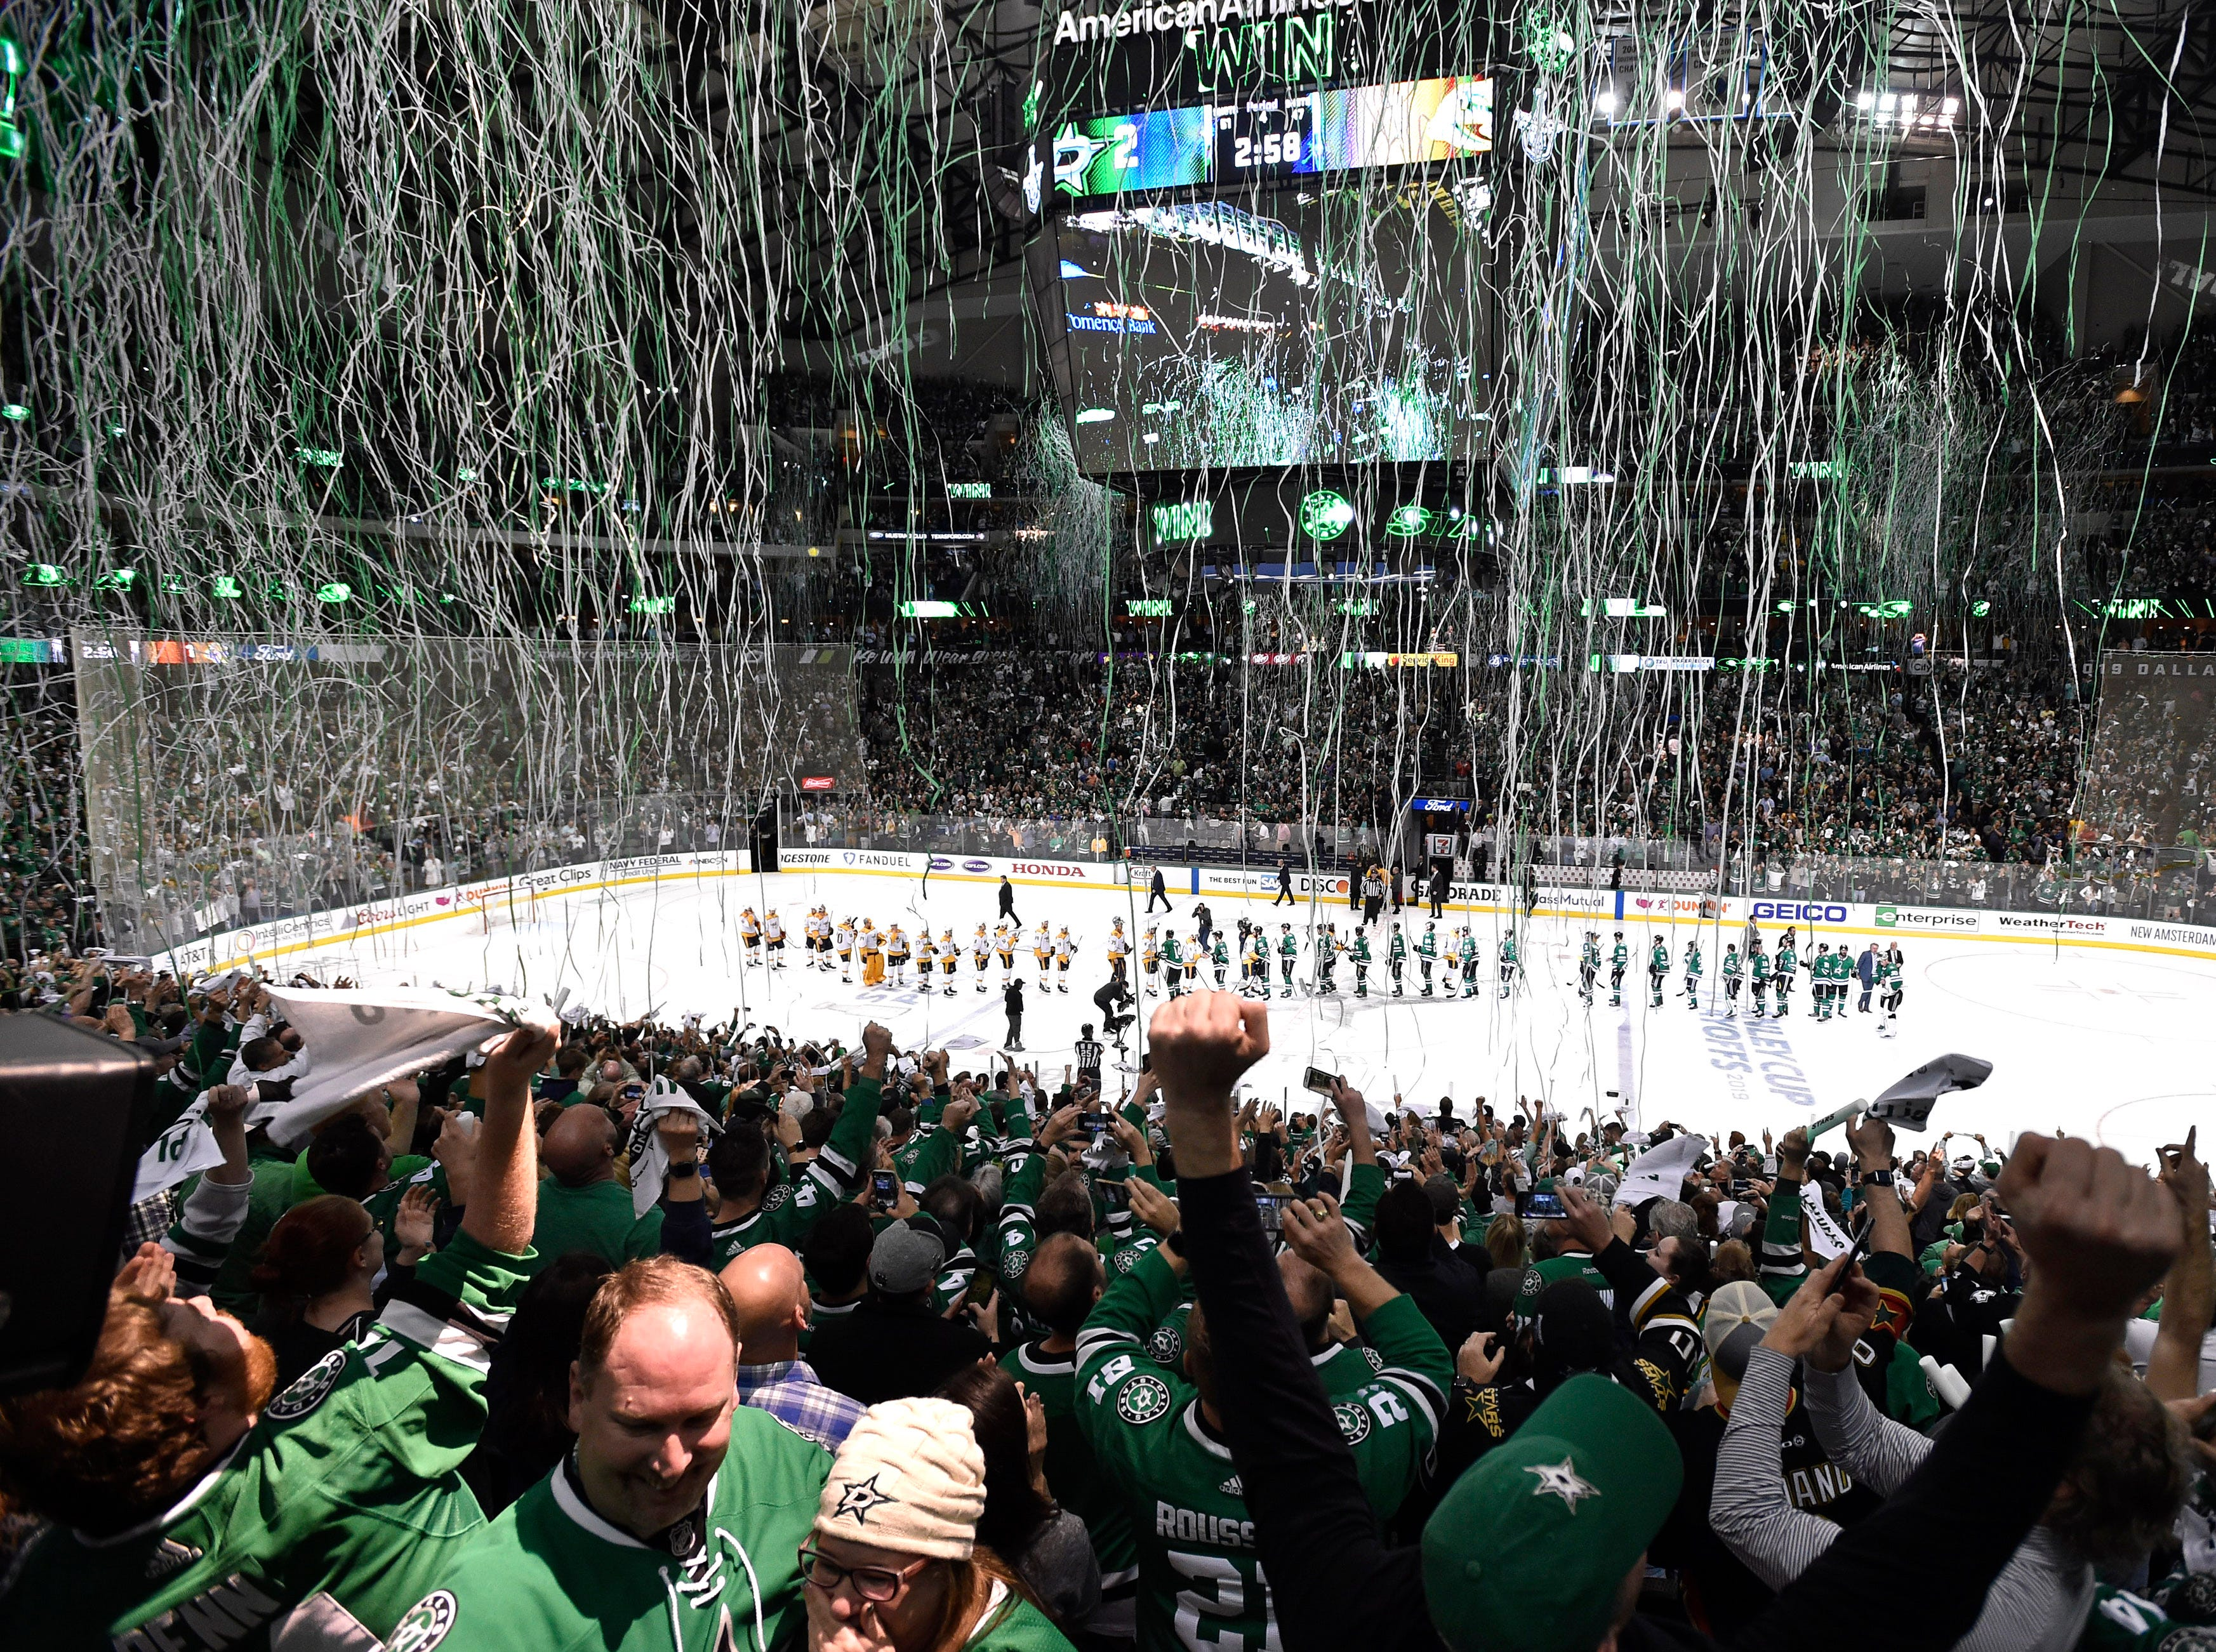 Dallas Stars fans celebrate the team's overtime win over the Nashville Predators, clinching the divisional semifinal series at the American Airlines Center in Dallas, Texas, Monday, April 22, 2019.